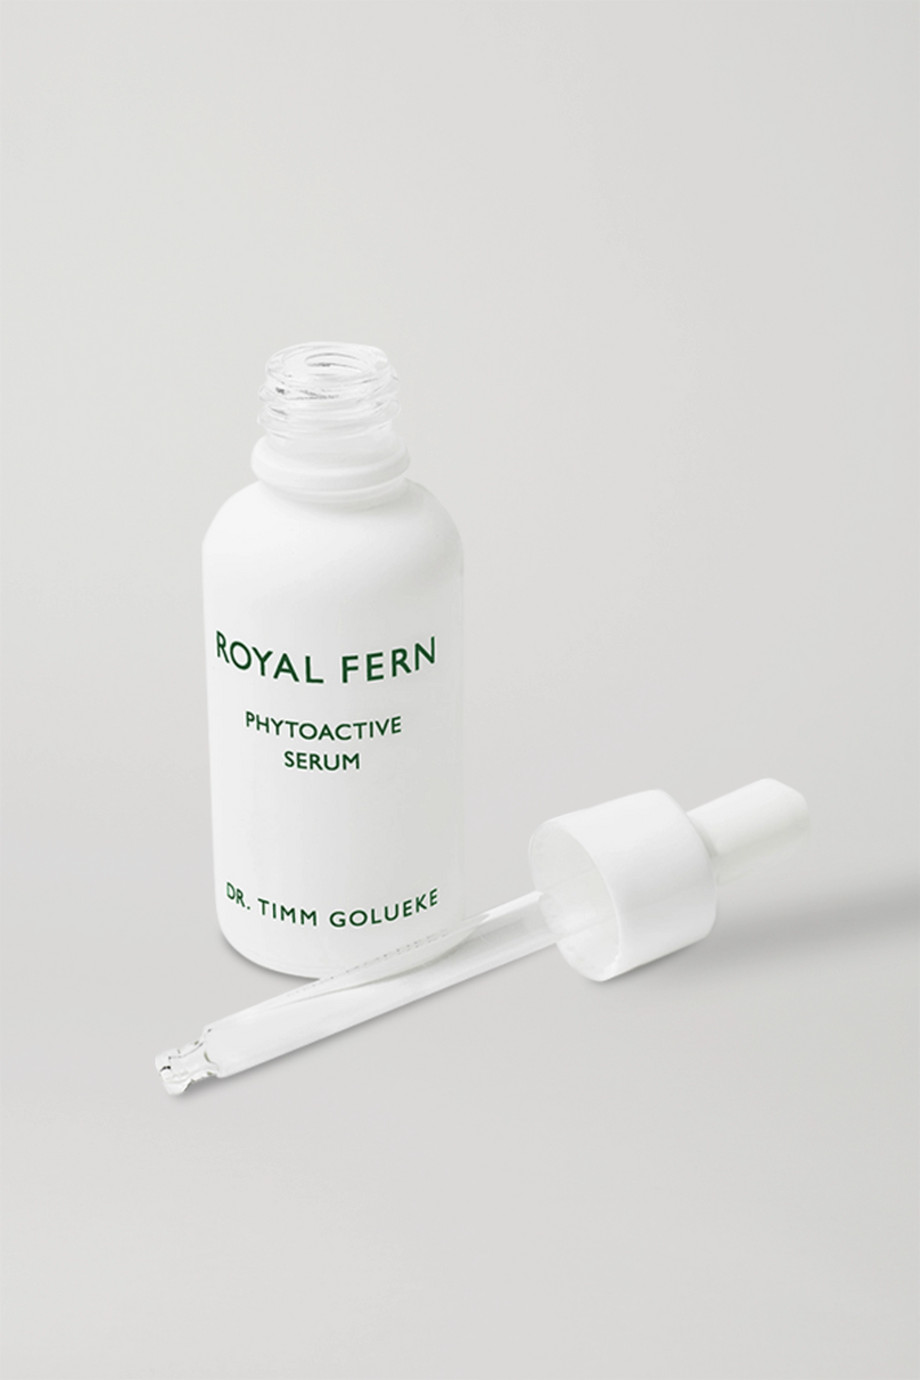 Royal Fern Sérum Phytoactive, 30 ml